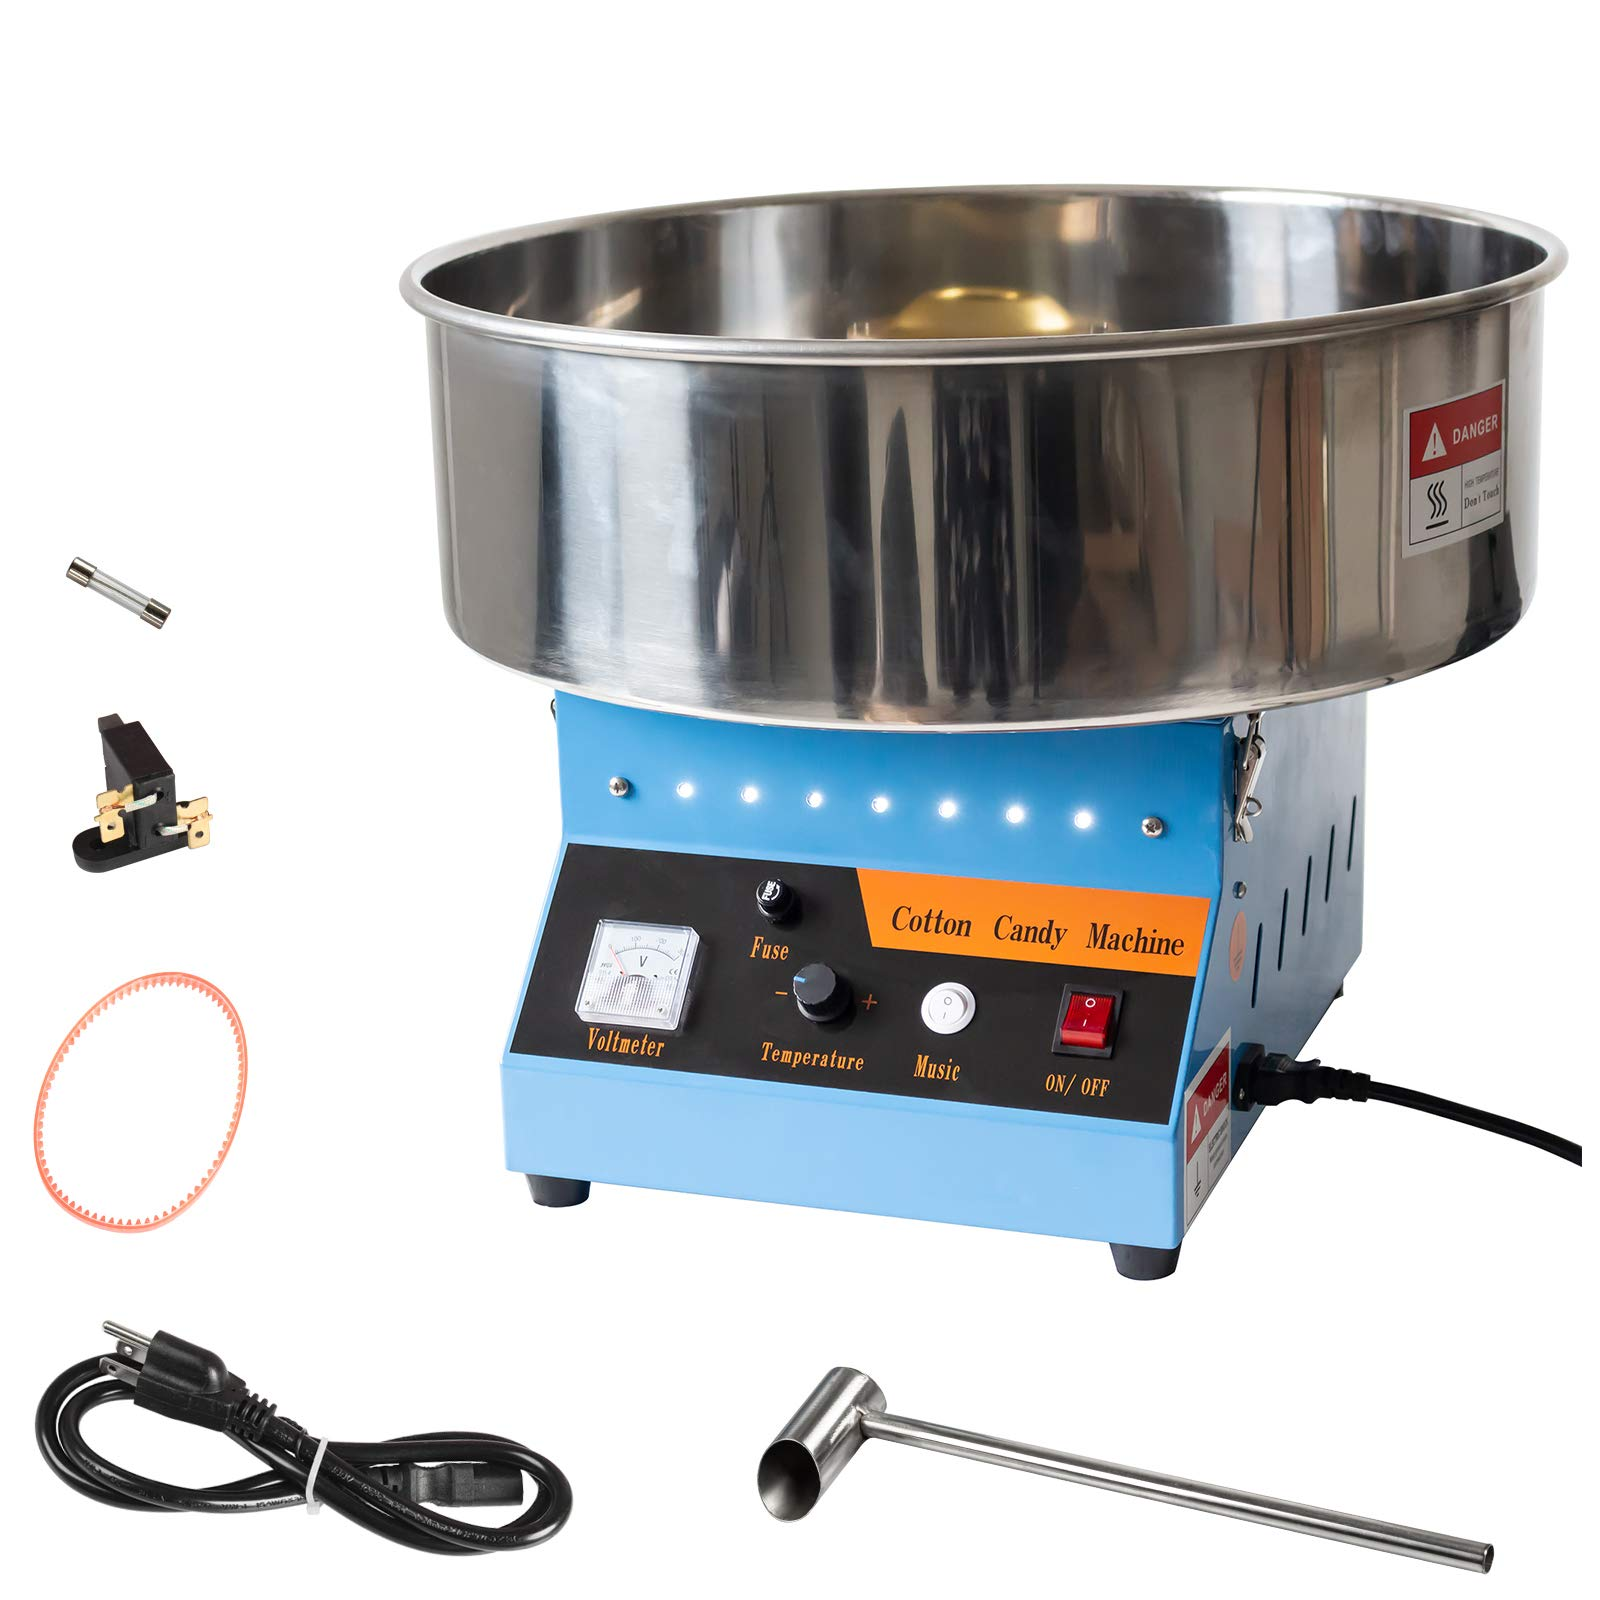 AJO Electric Commercial Quality Cotton Candy Machine and Candy Floss Maker (Blue)